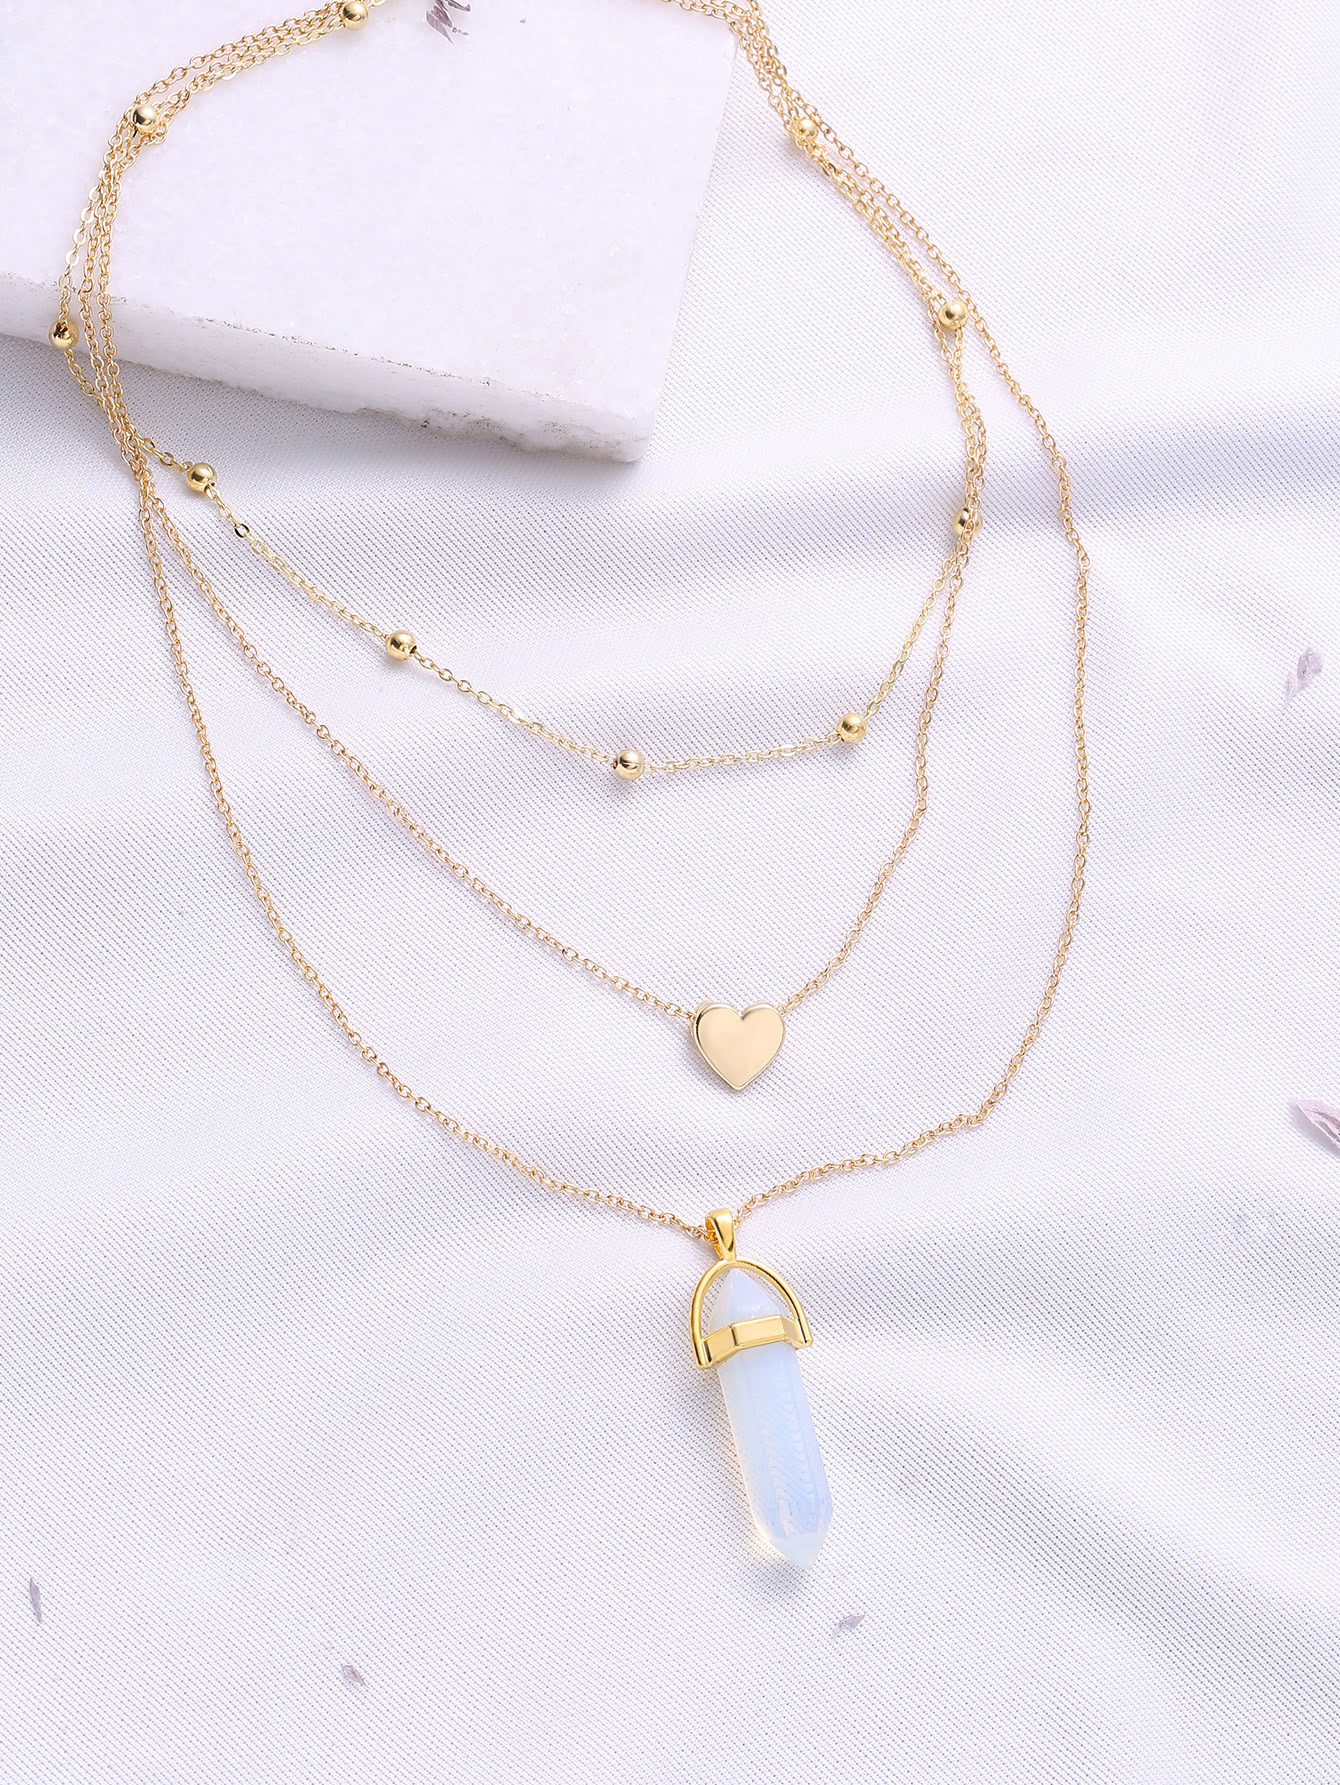 Gold Heart Pendant Layered Chain Necklace heart of gold